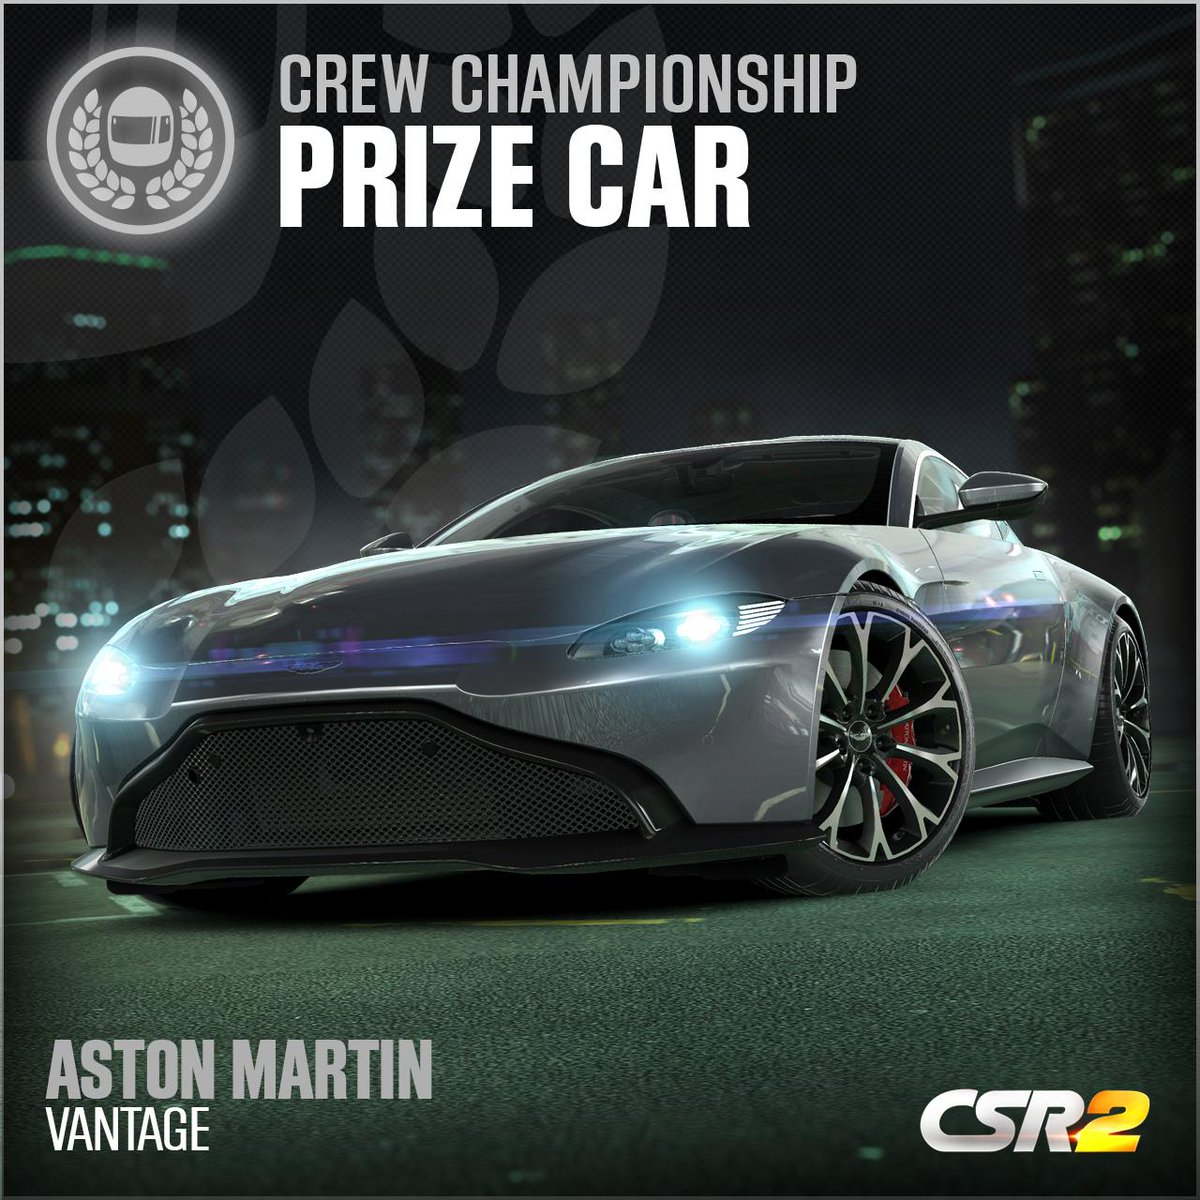 Csr Racing On Twitter Race For A Chance To Win The Unique Aston Martin Vantage In The New Csr2 Crew Championship